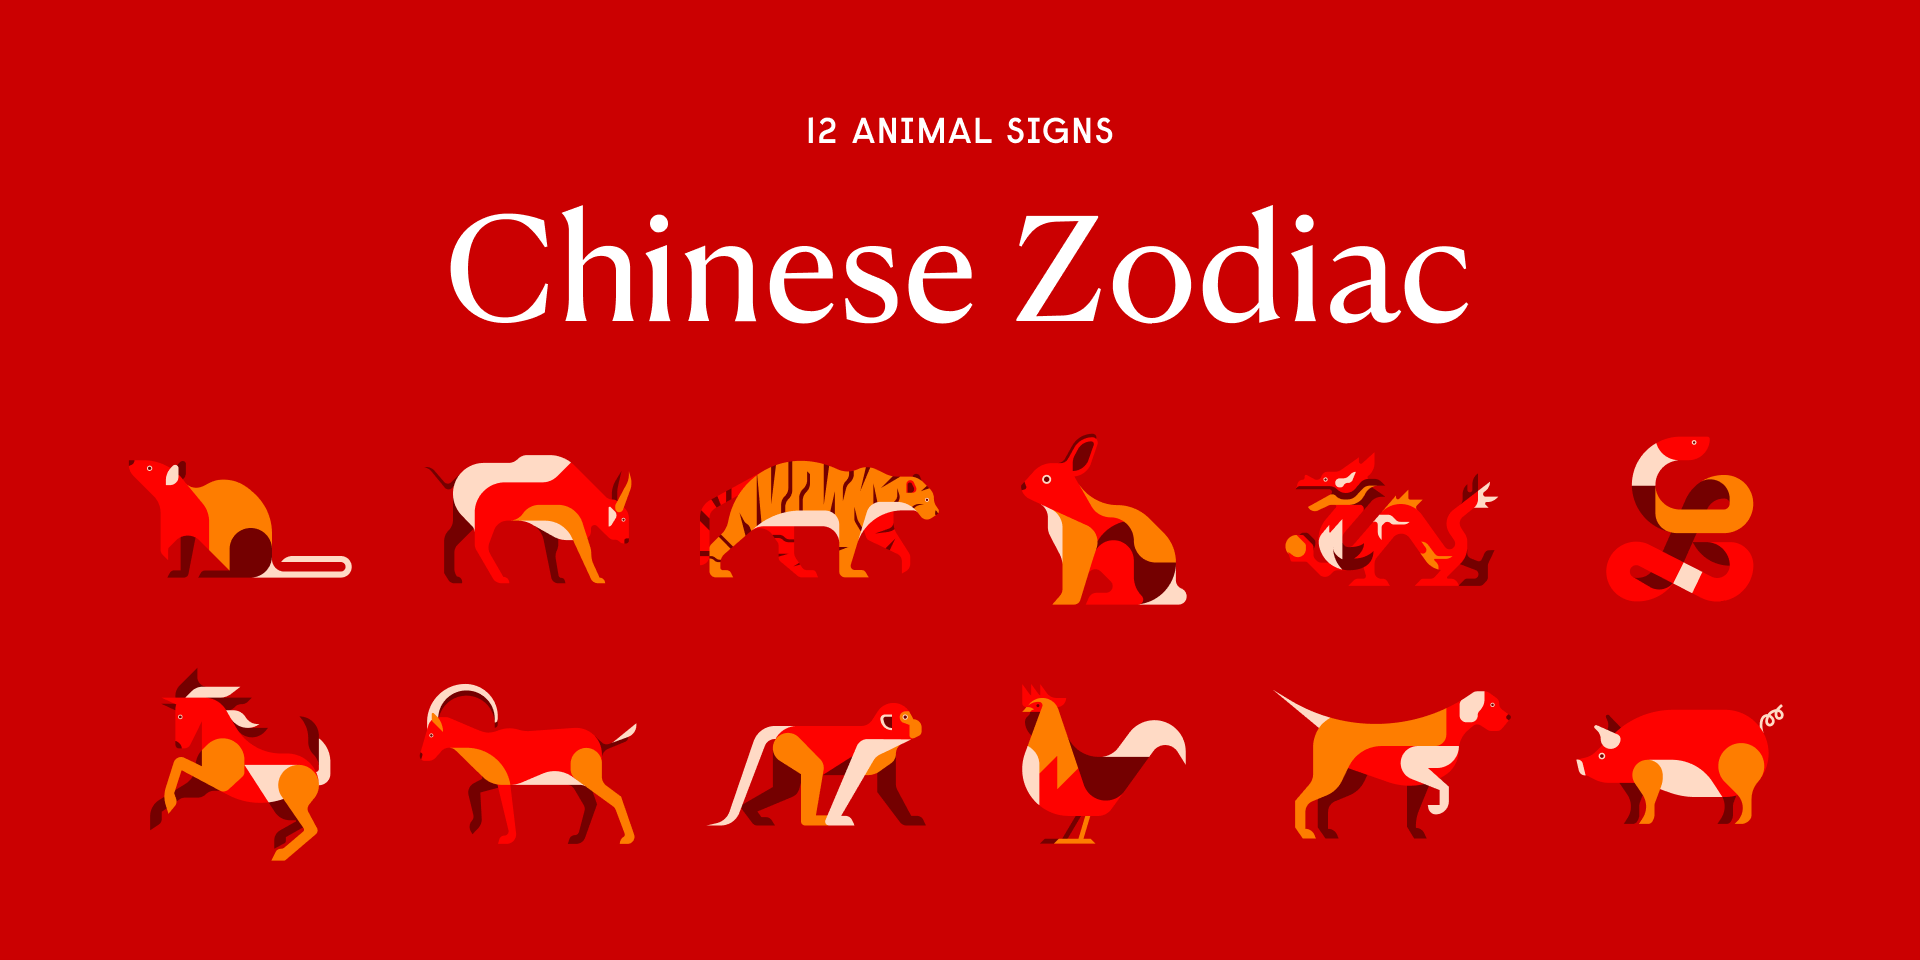 Chinese Zodiac 12 Animal Signs Compatibility Horoscopes